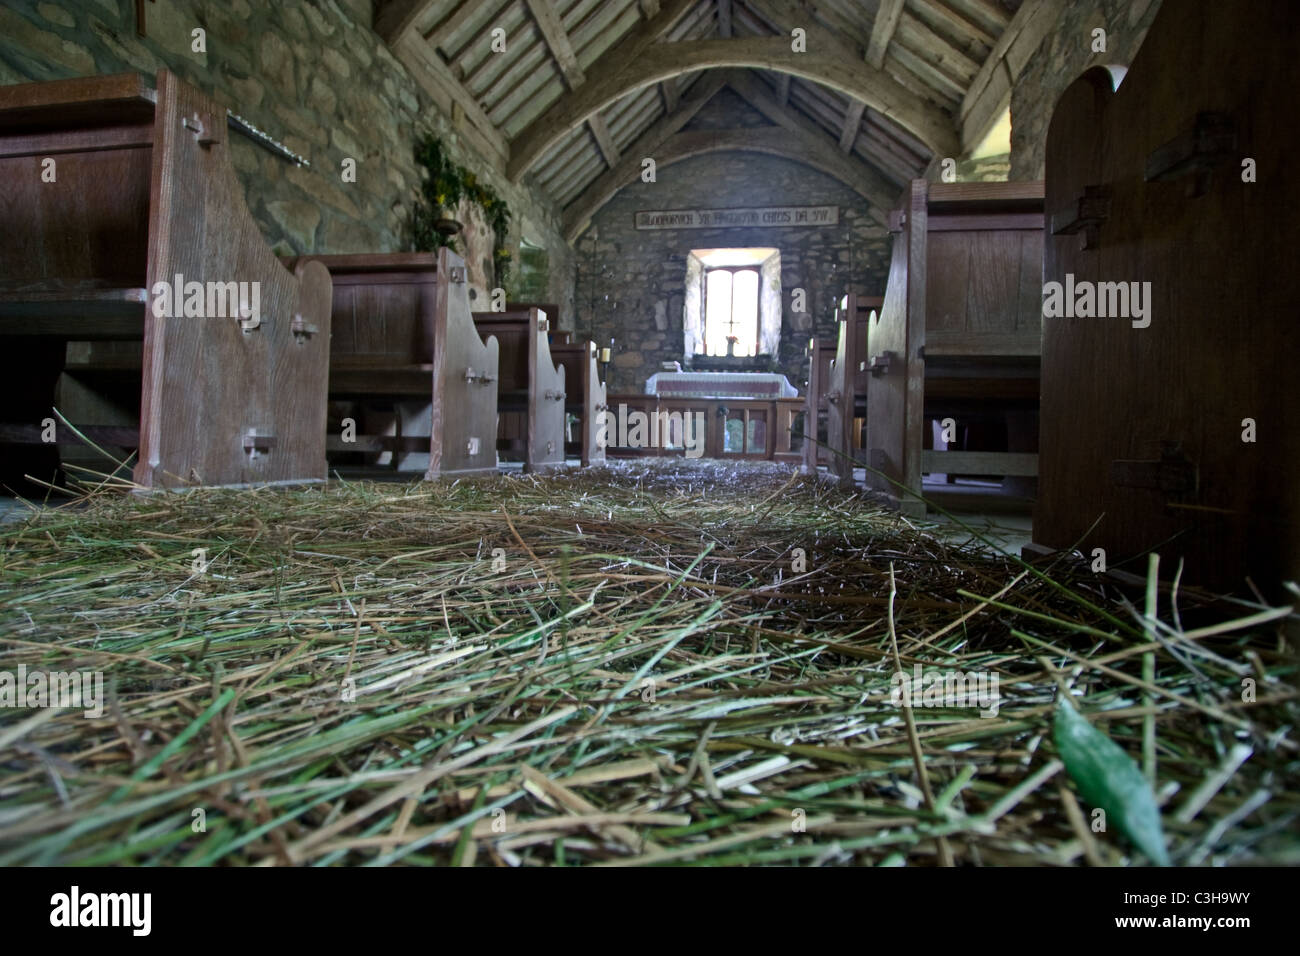 Fragrant Rushes Layered On The Floor Of Pistyll Church